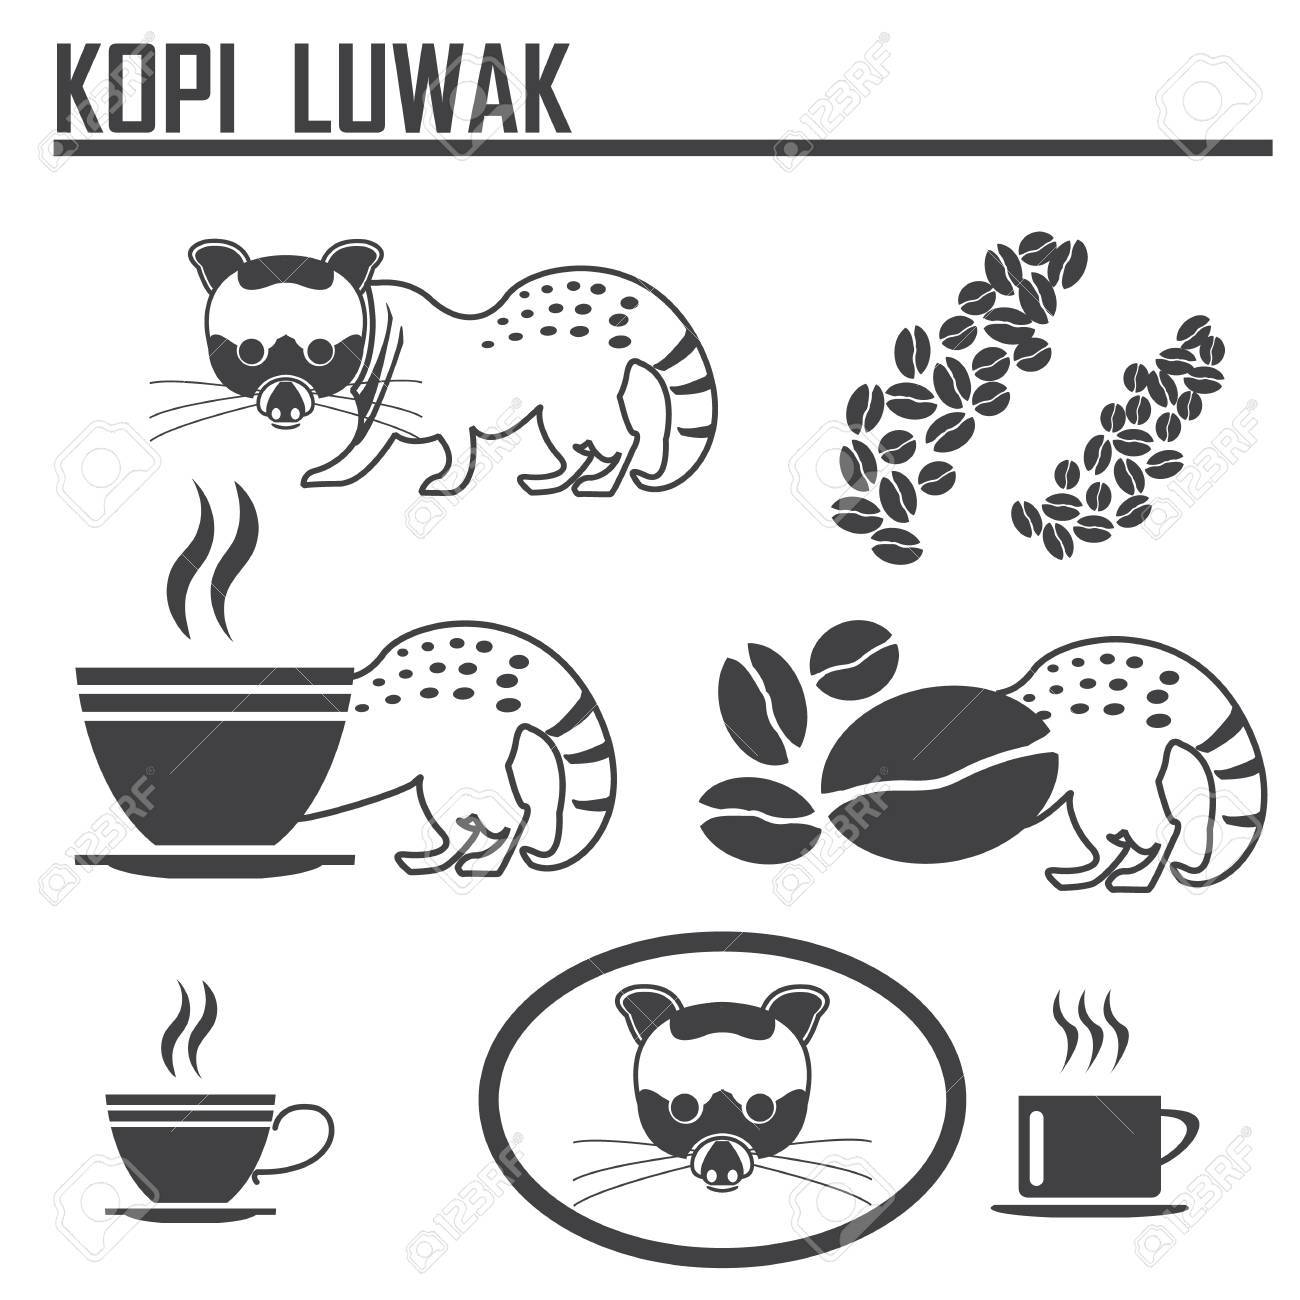 luwak kopi coffee icon set royalty free cliparts vectors and stock illustration image 48760942 luwak kopi coffee icon set